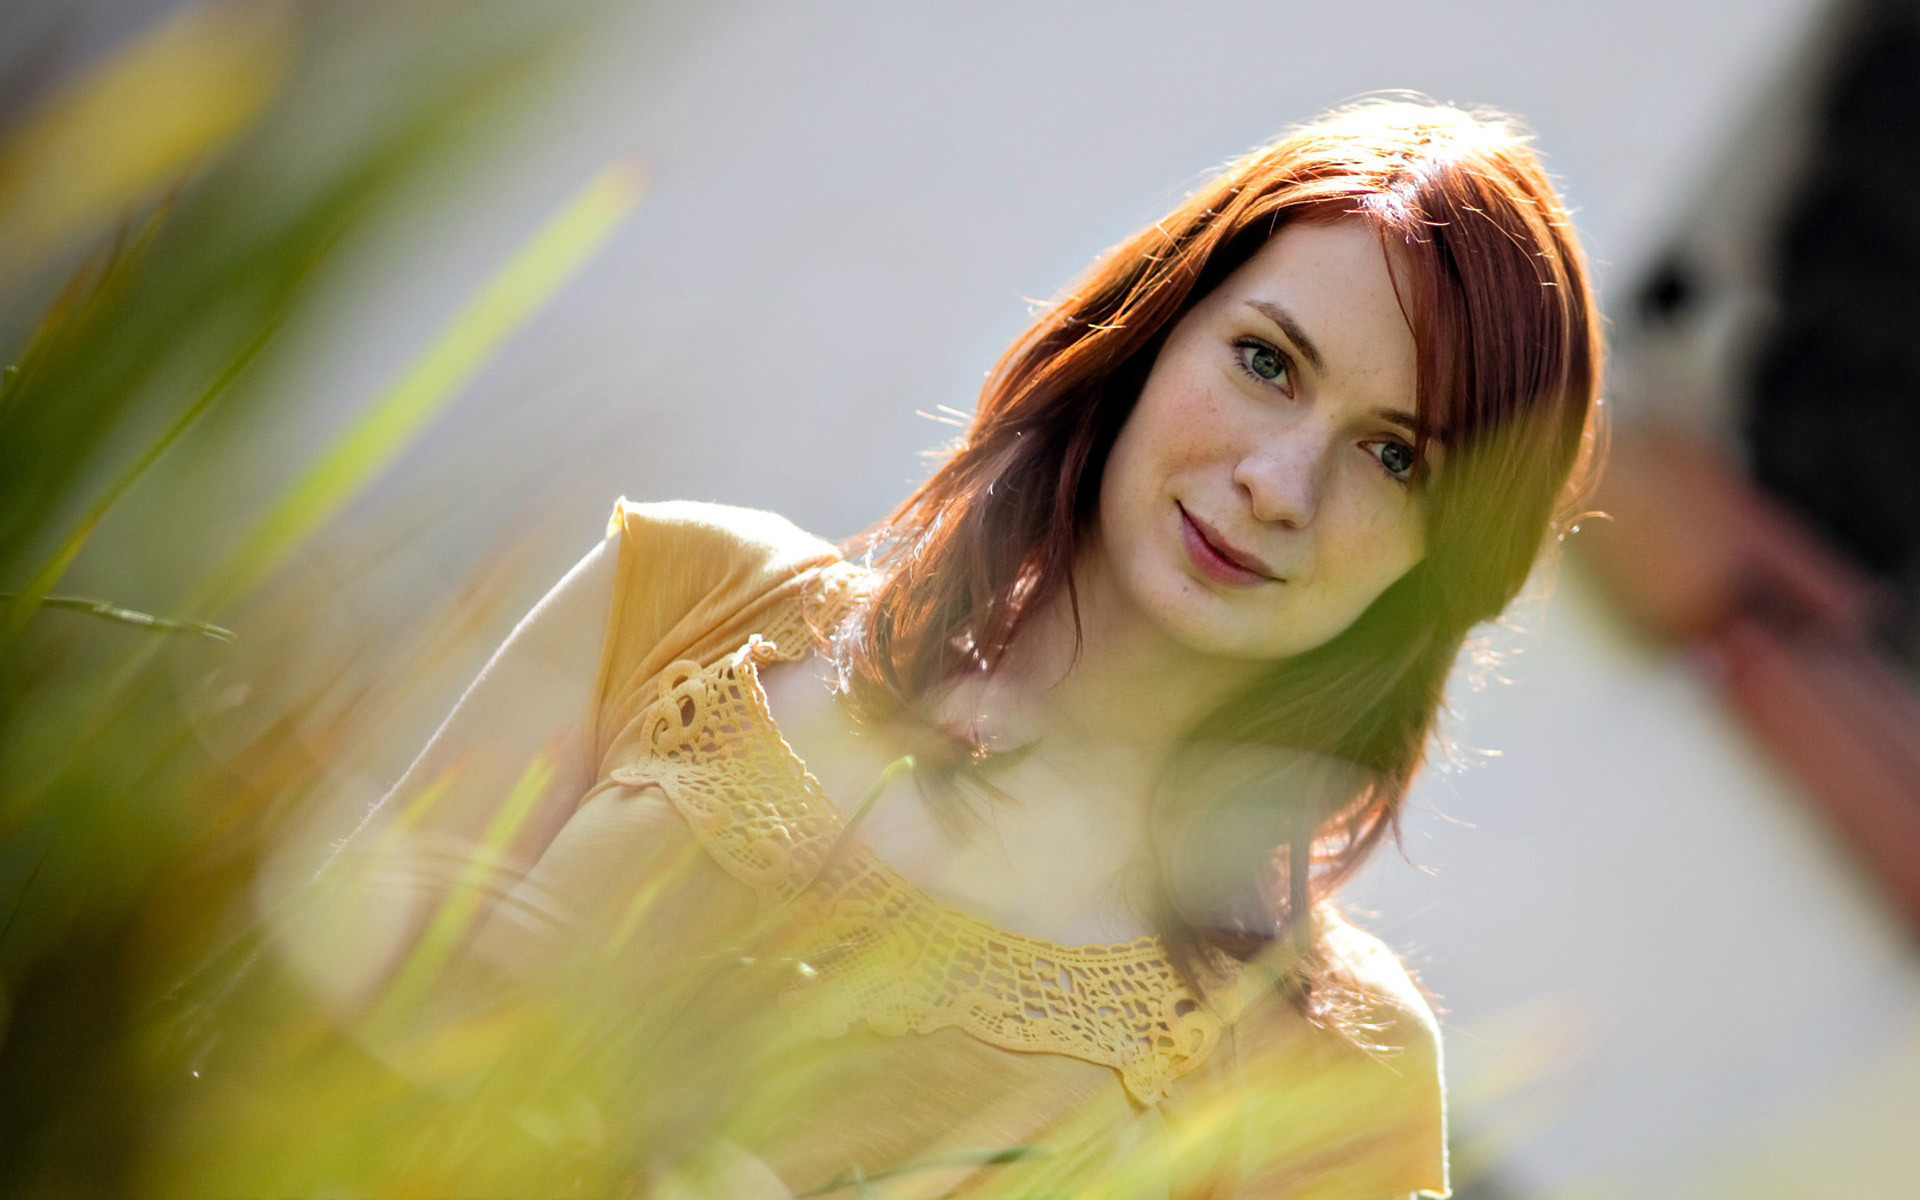 Res: 1920x1200, Felicia Day HD Wallpaper | Hintergrund |  | ID:598139 - Wallpaper  Abyss